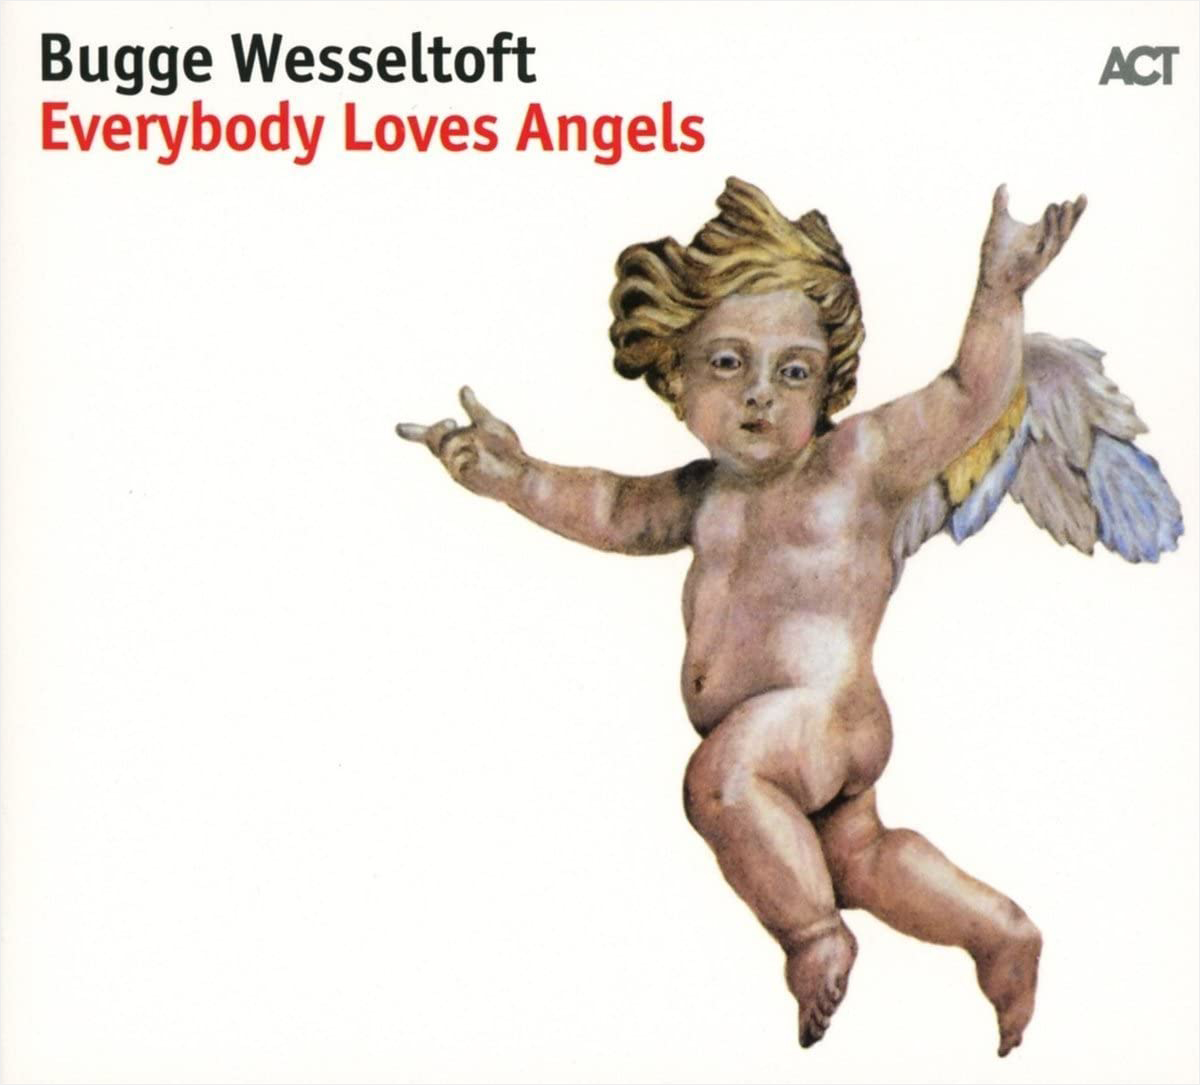 Bugge Wesseltoft / Everybody Loves Angels